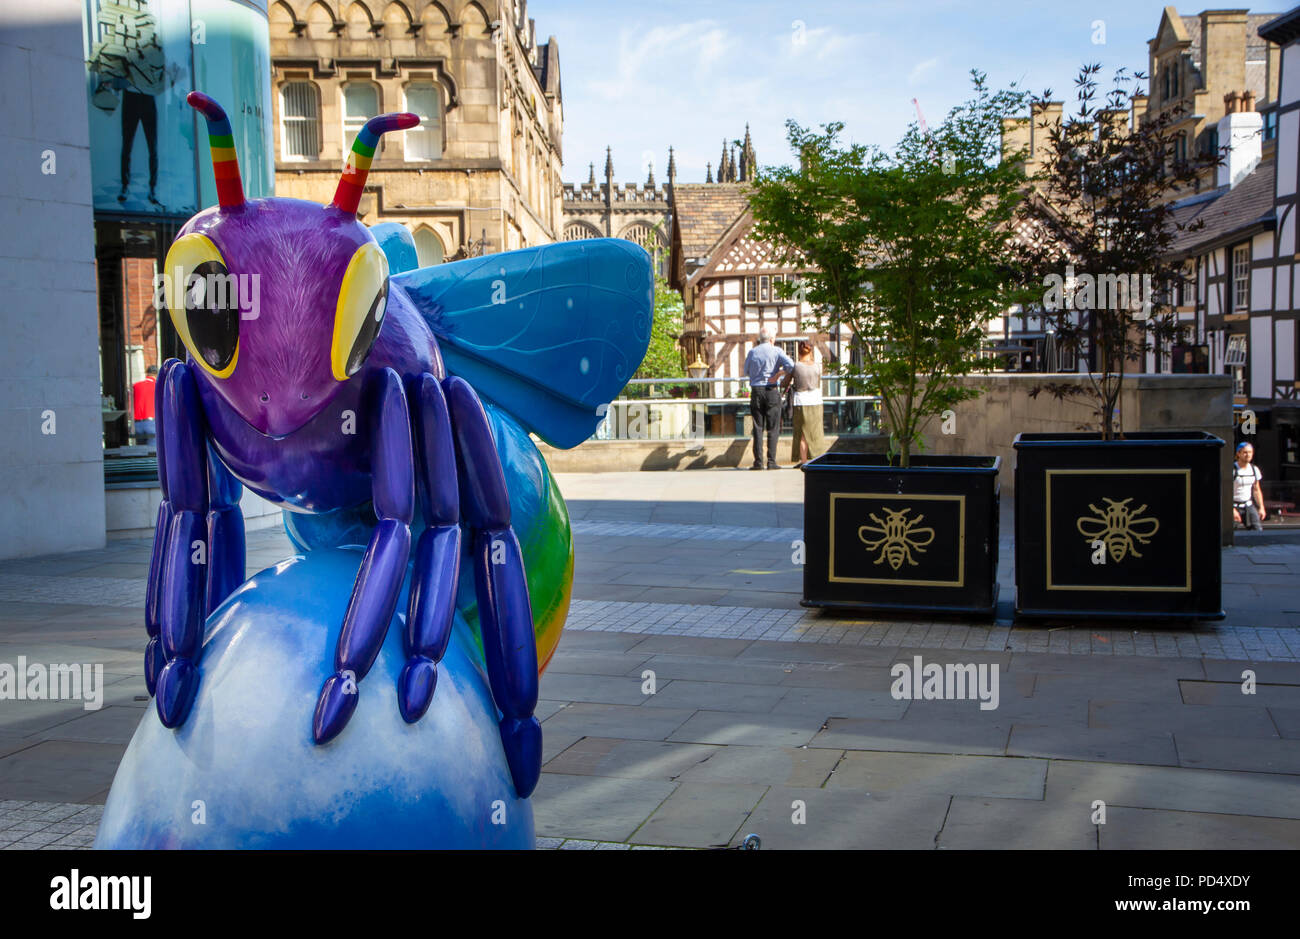 Bee a Rainbow! Rachel A Blackwell. Bee in the City, public art event in the City of Manchester. Over 100 bees on a free family fun trail. - Stock Image